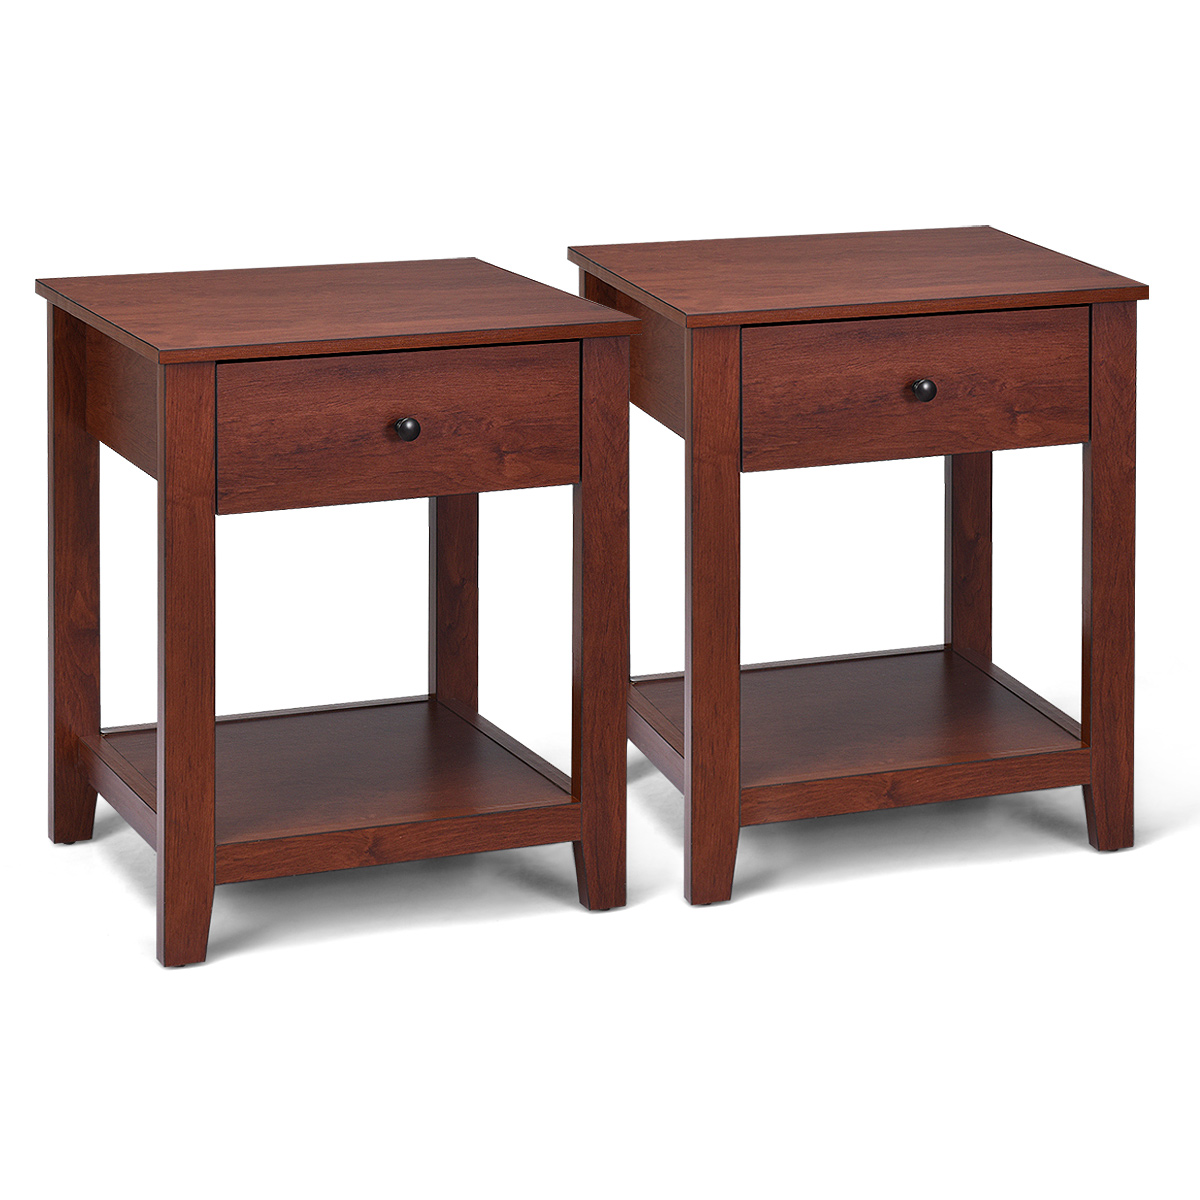 Costway Set Of 2 Night Stand End Side Table Bedside Sofa Accent Table W/Drawer And Shelf